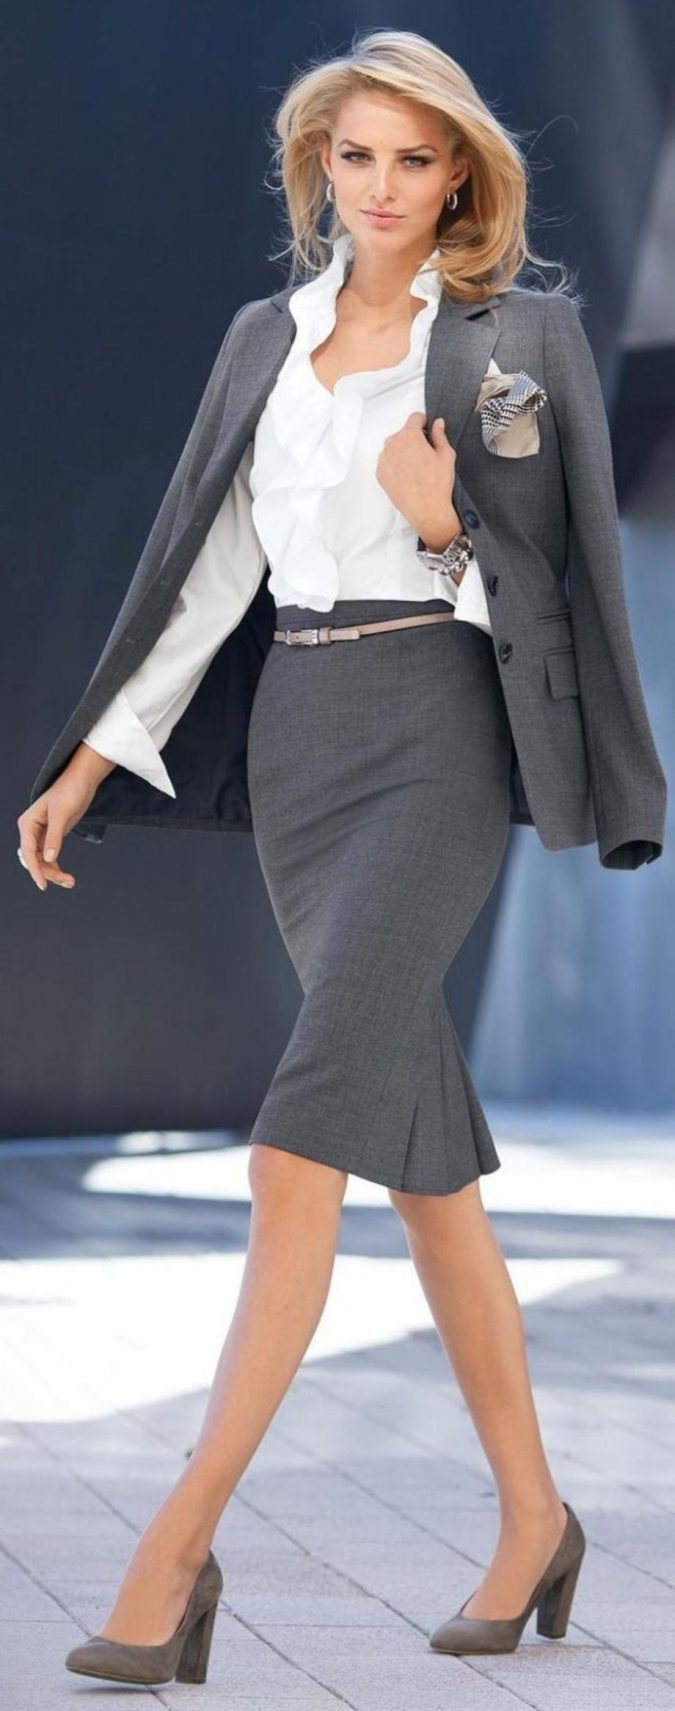 summer-work-outfit-skirt-suit-2-675x1711 80+ Elegant Summer Outfit Ideas for Business Women in 2019